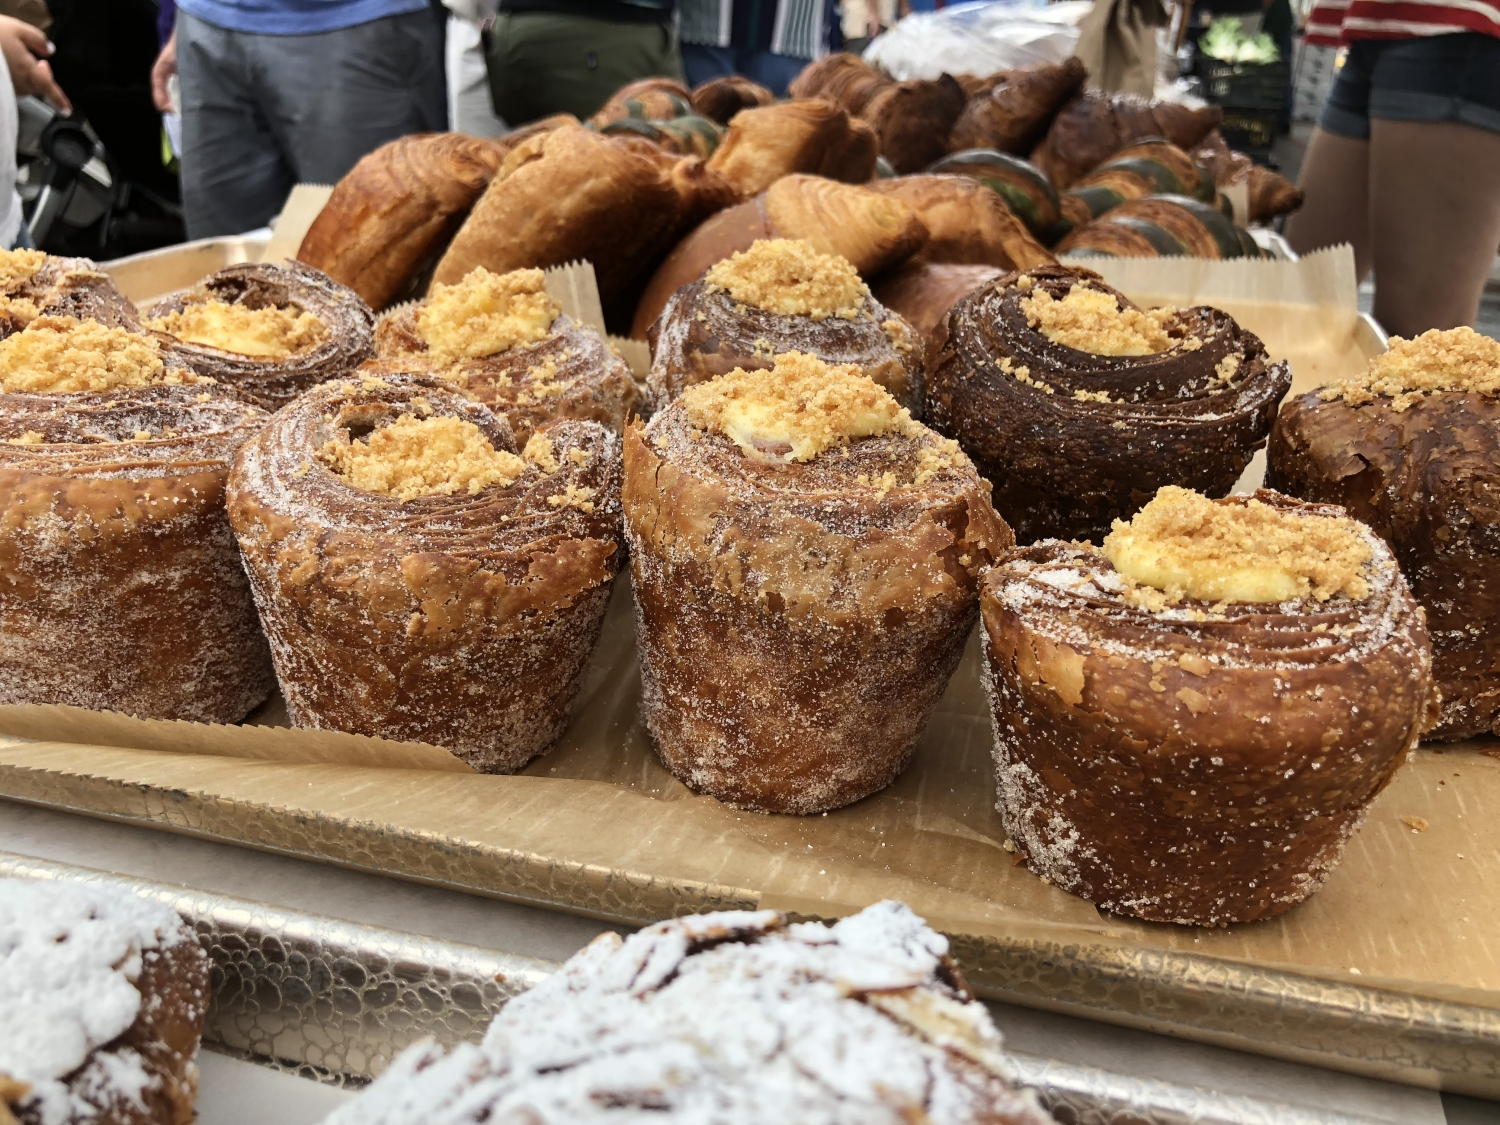 Baked goods at The Dublin Market